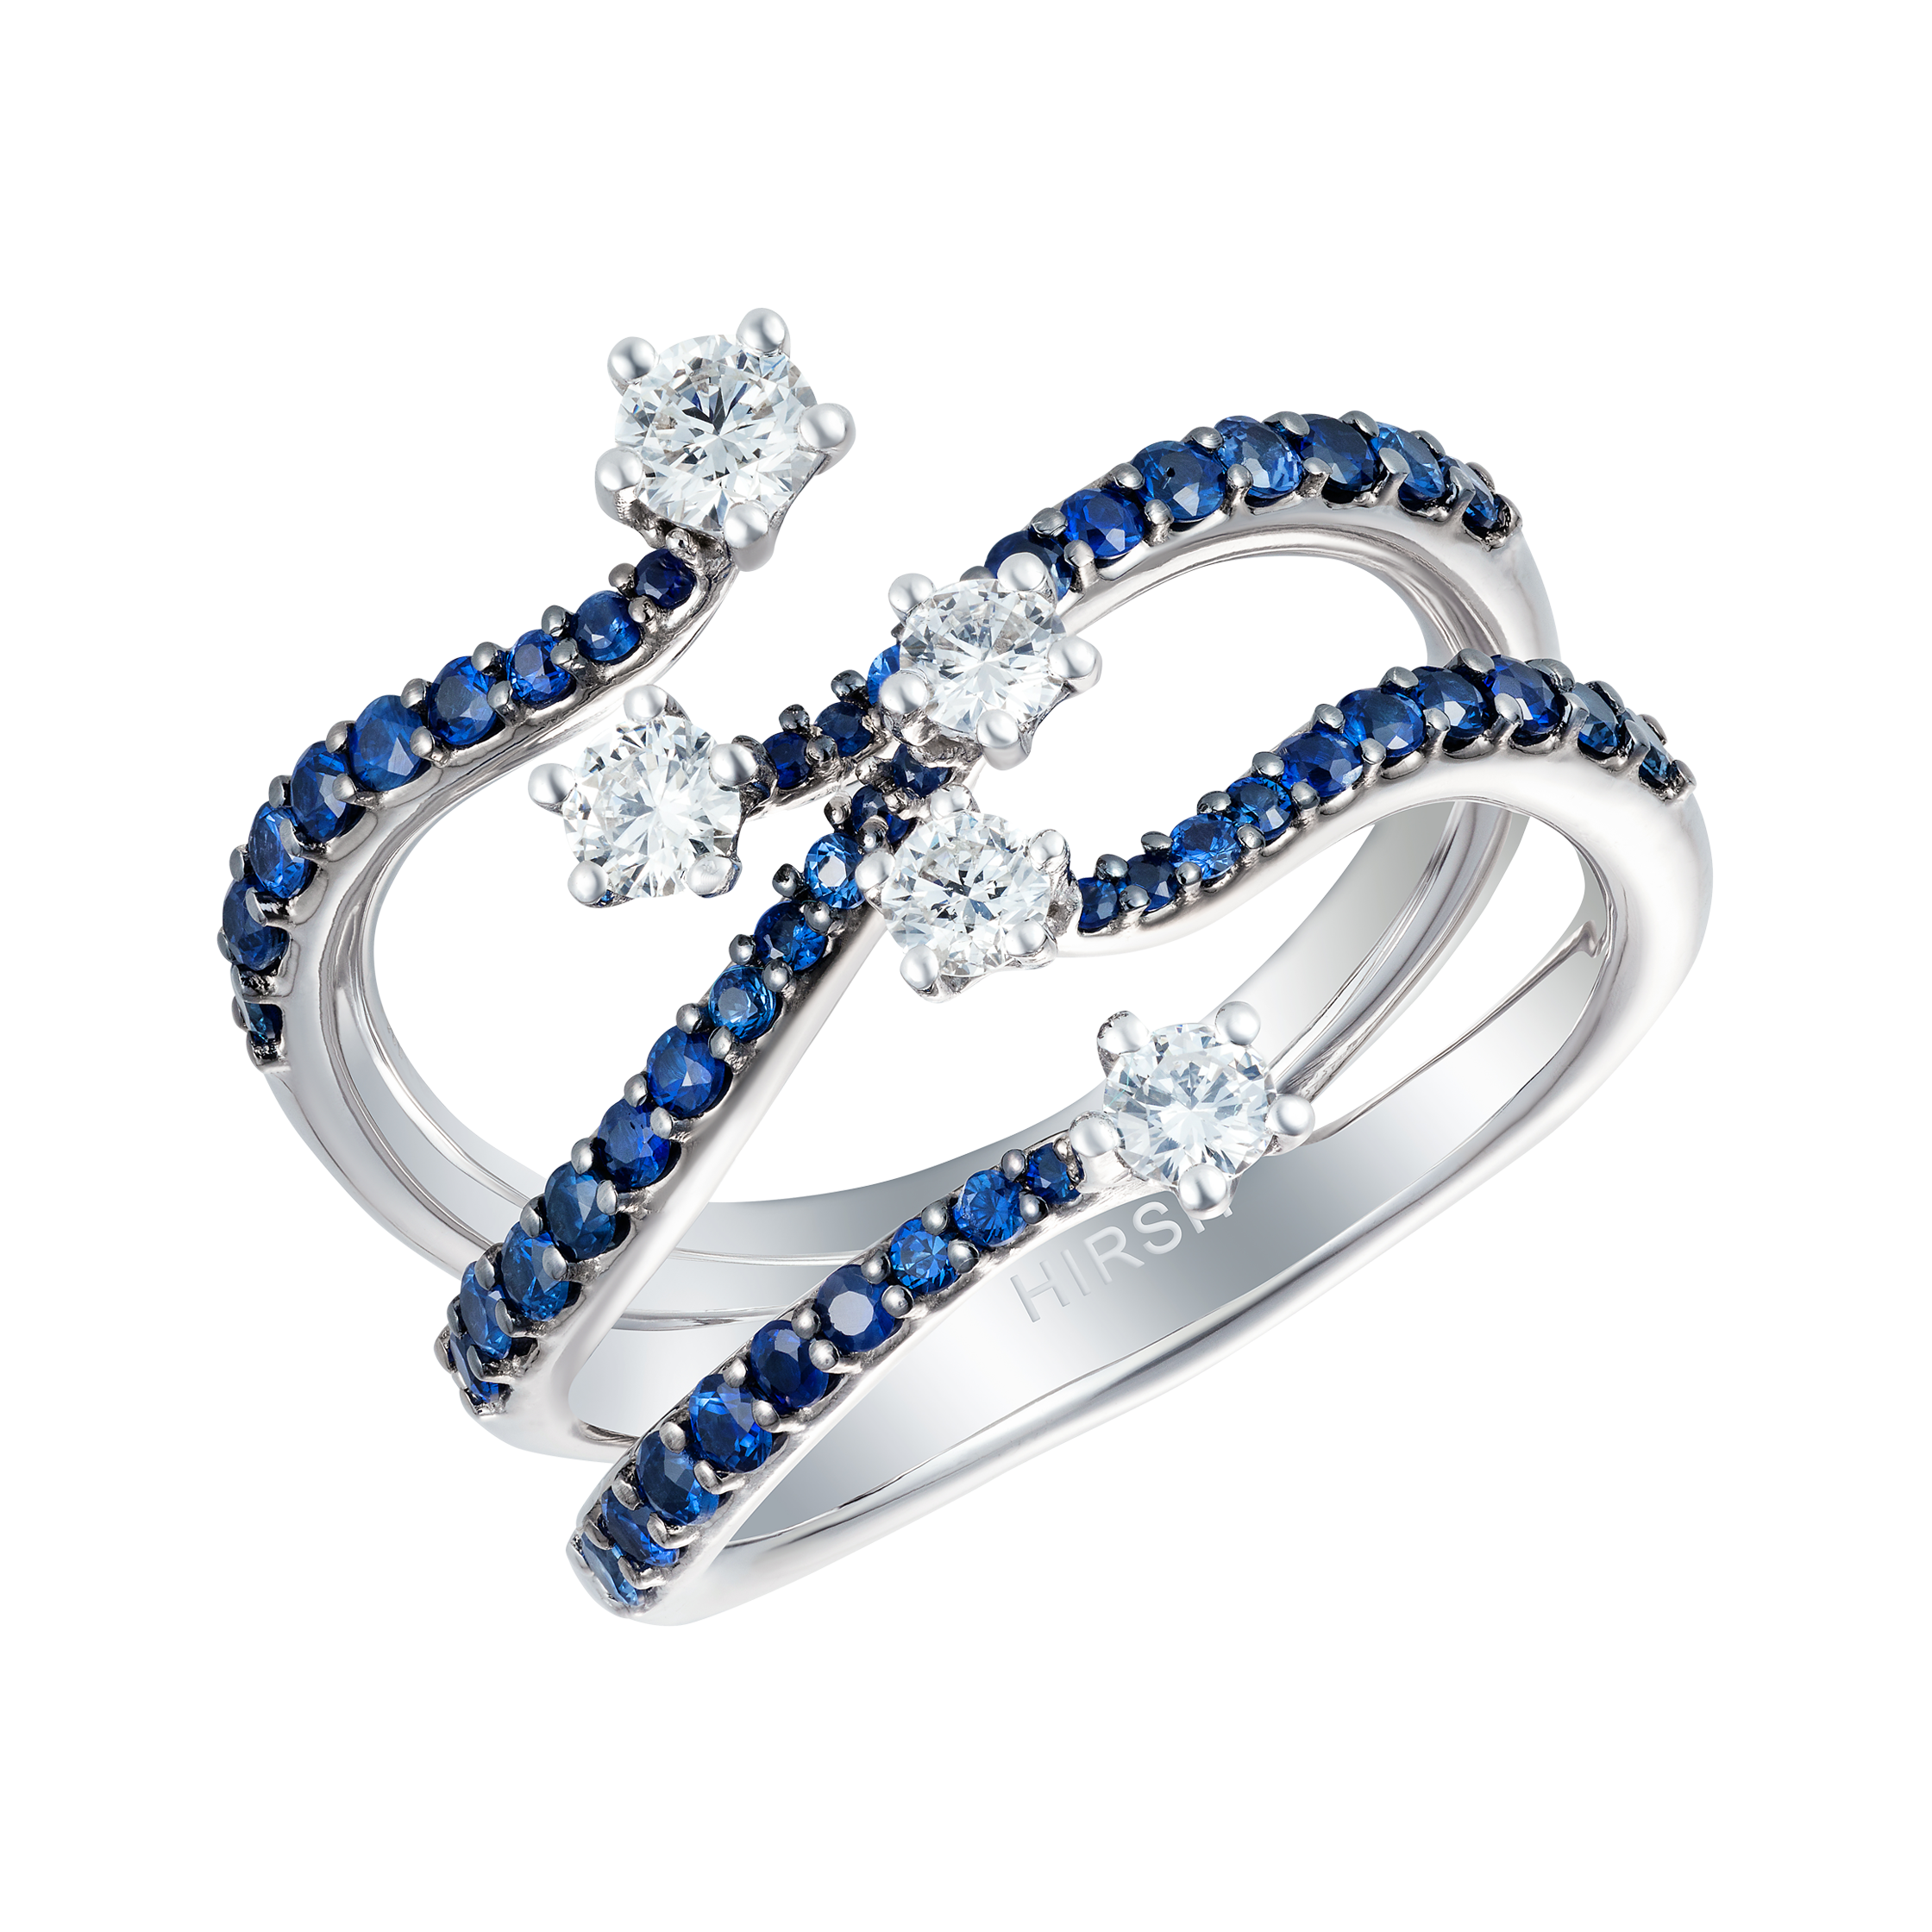 aaa rings s ring promise white anniversary whitfield sapphire sterling blue ceylon silver cut alysha palladium simple mother petite diamond engagement yellow products gold